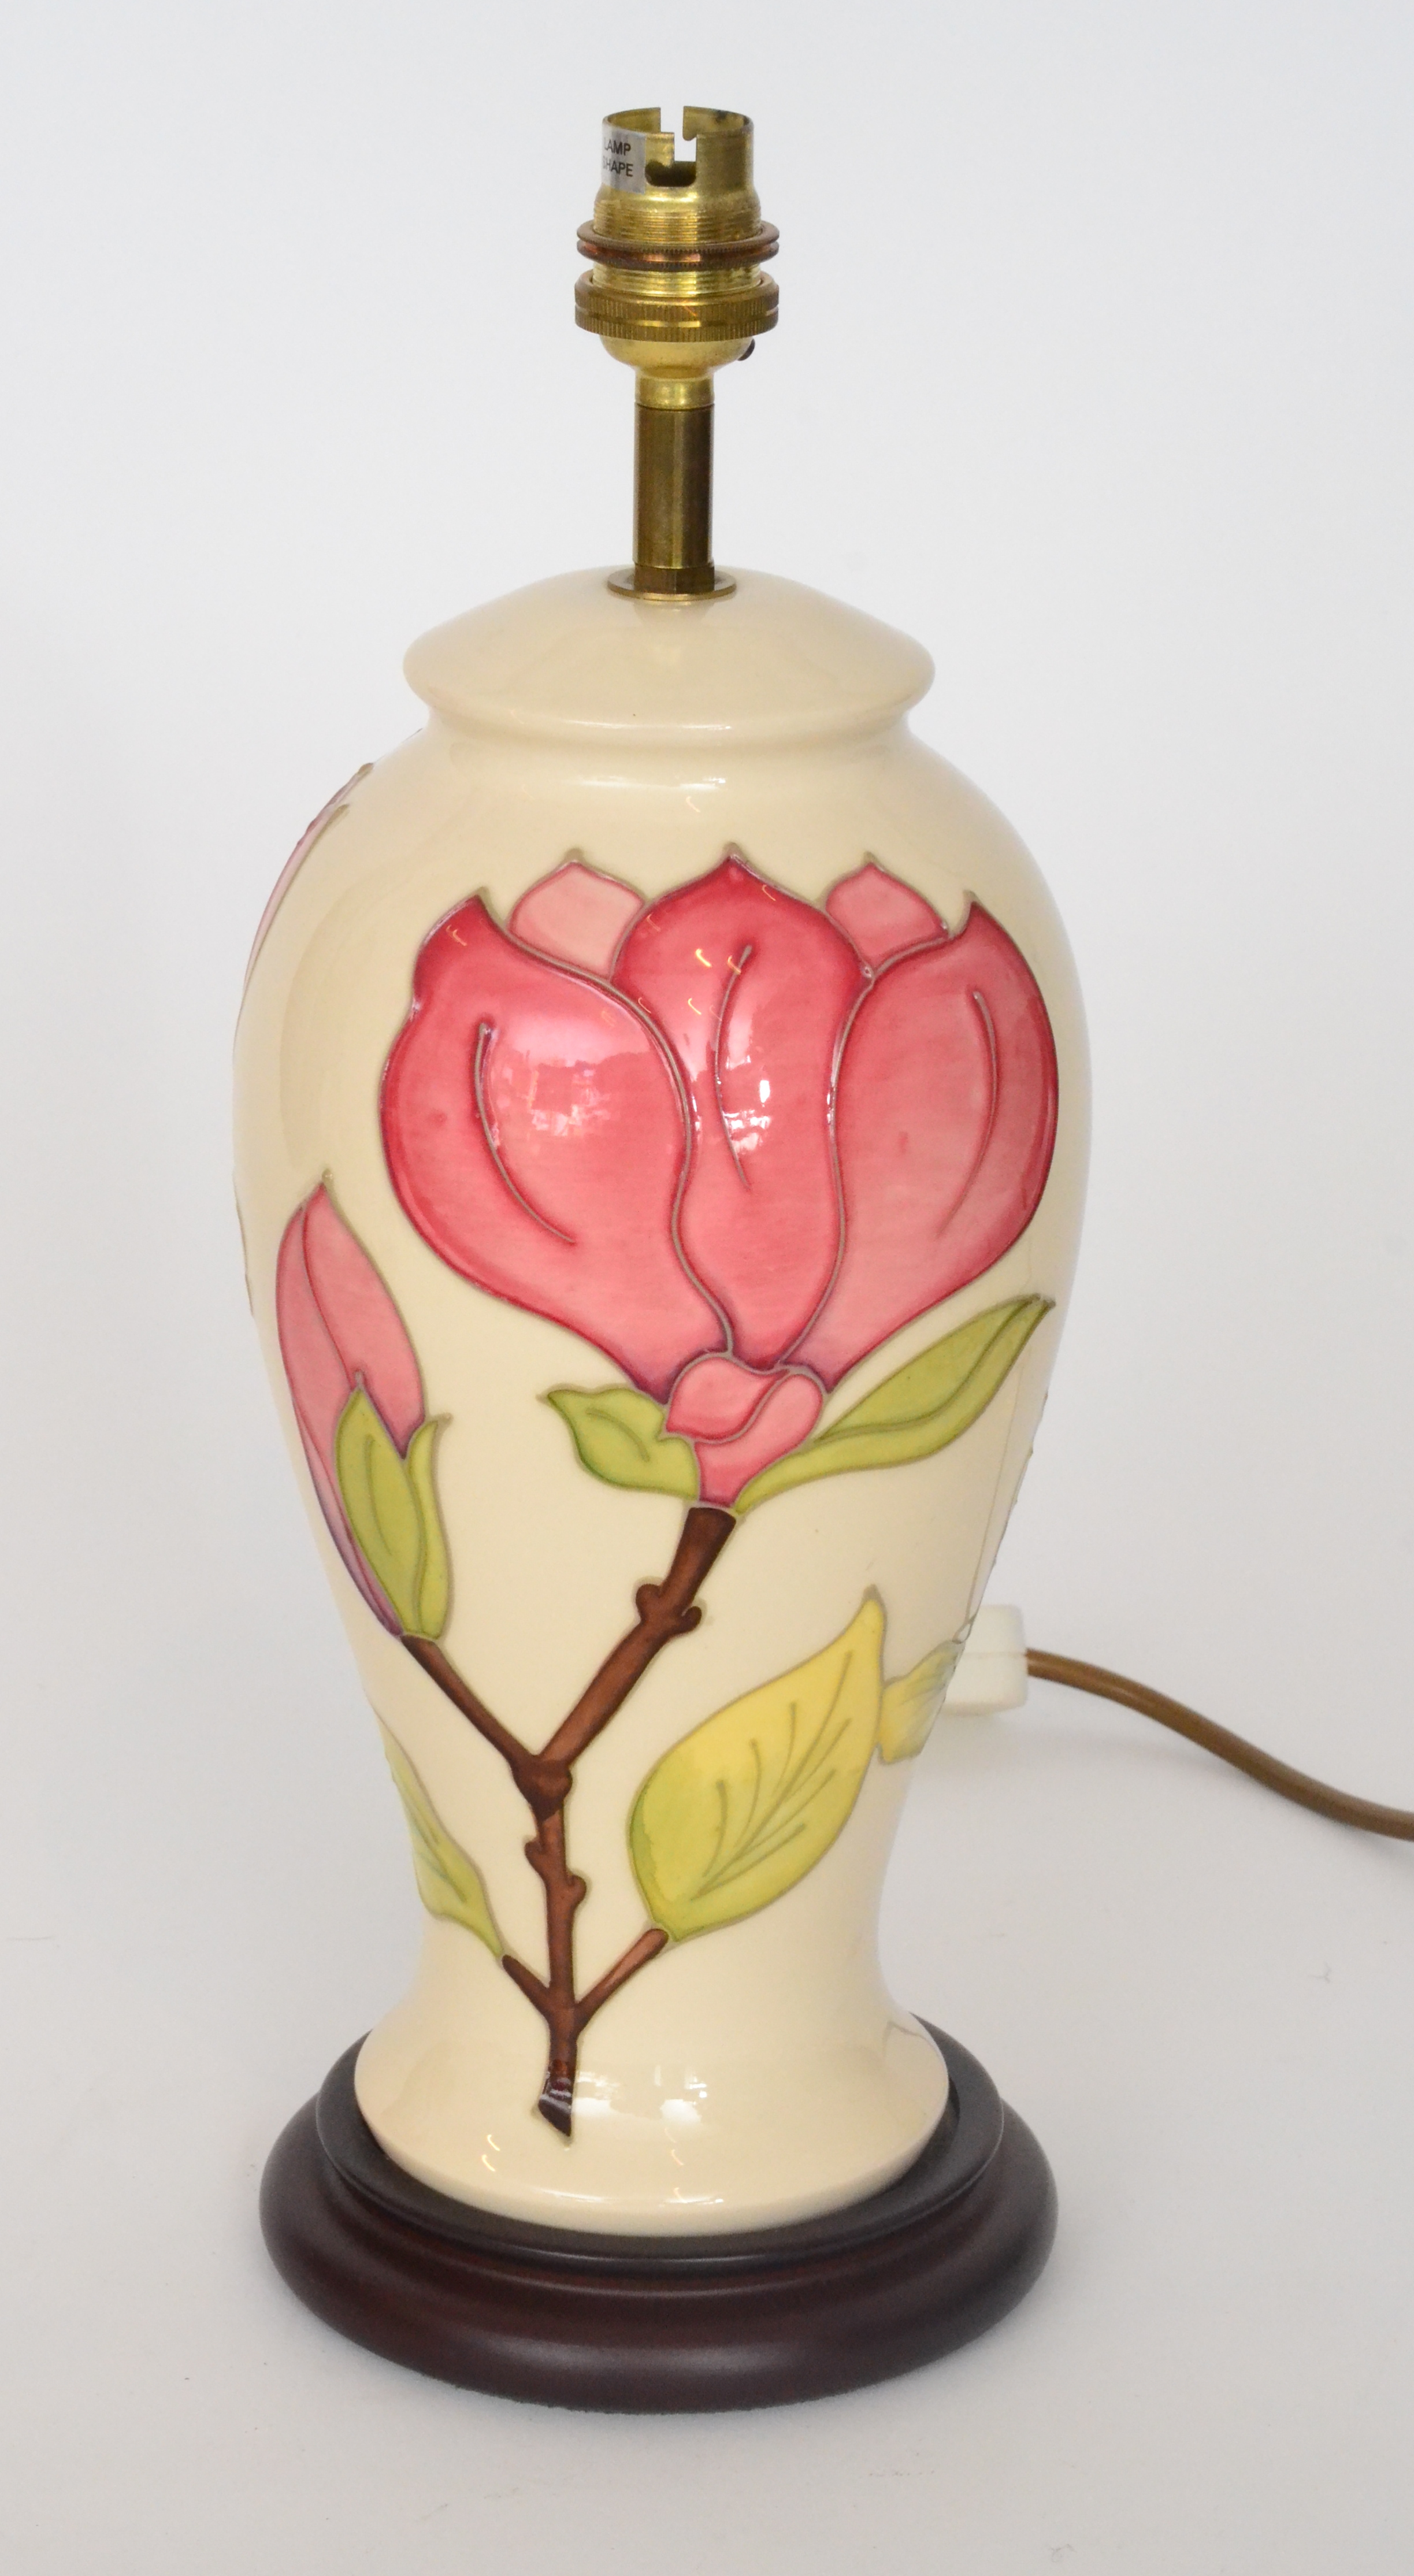 A walter moorcroft magnolia pattern table lamp decorated with pink lot 49 a walter moorcroft magnolia pattern table lamp decorated with pink flowers to a reviewsmspy